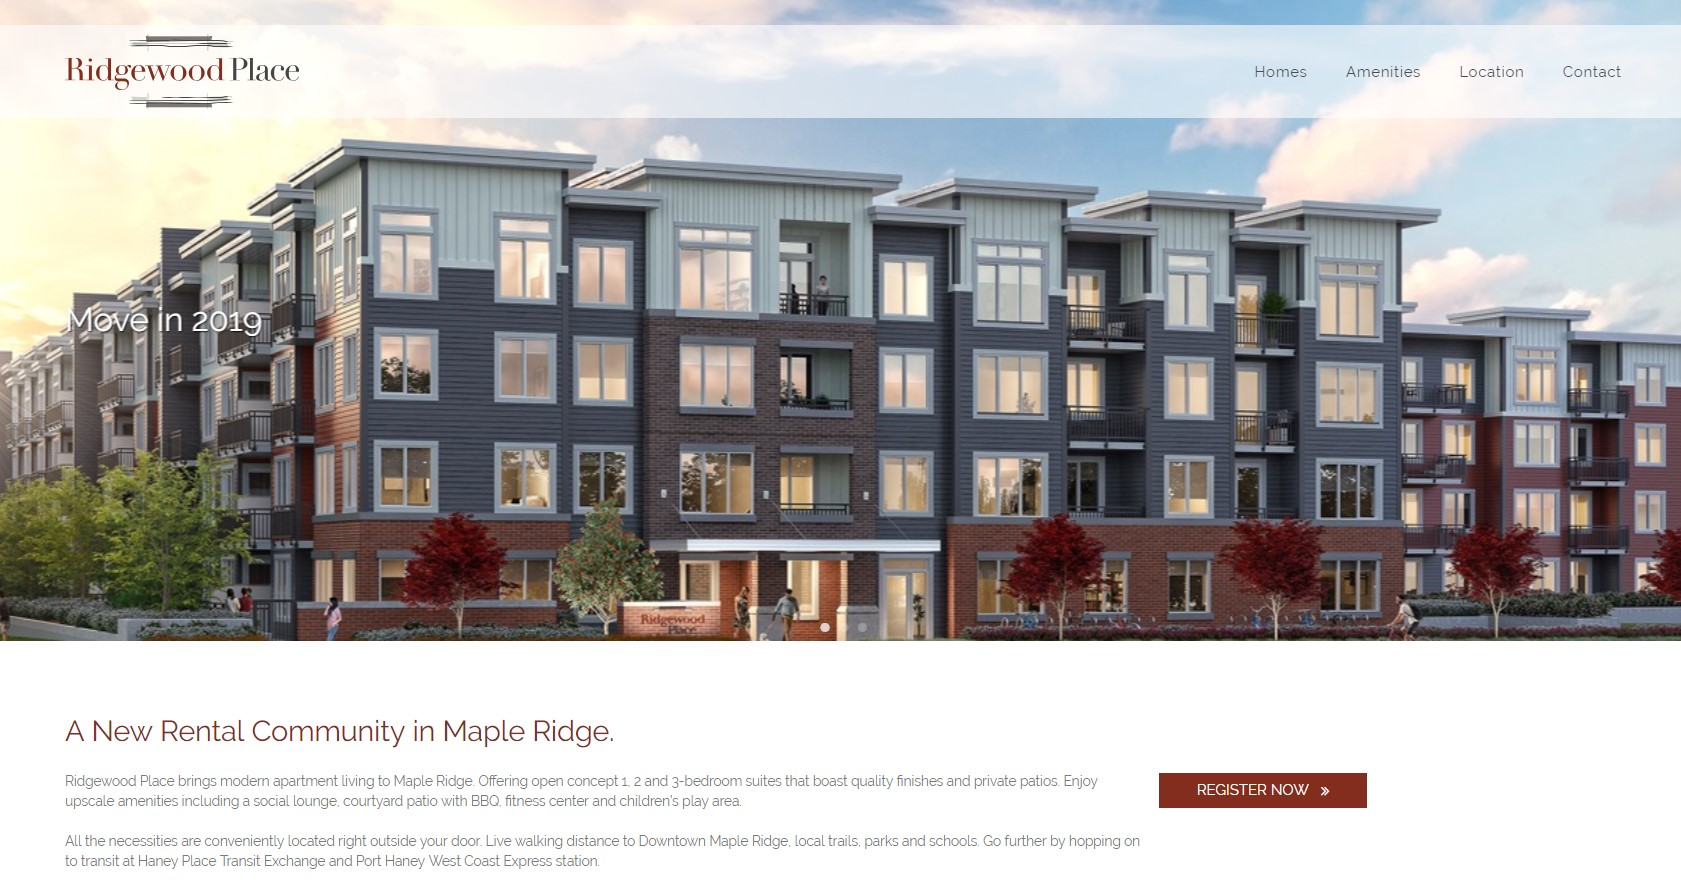 Ridgewood Place website screenshot